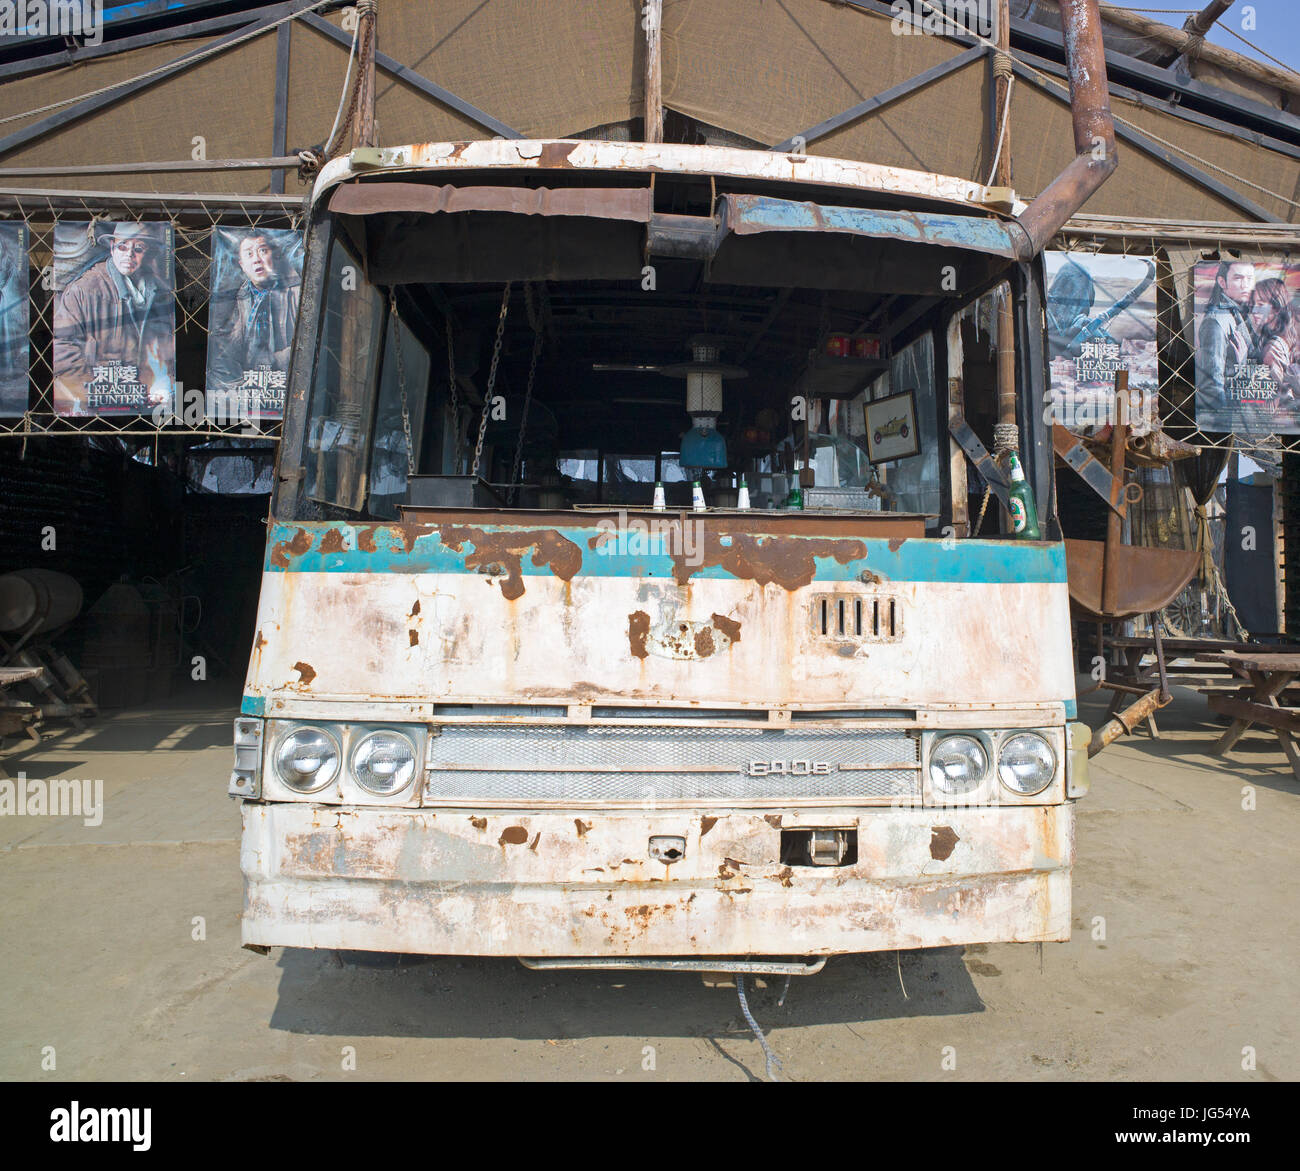 Rusting shell of bus used as temporary shelter and for stage prop, China West Film Studio, Ningxia - Stock Image